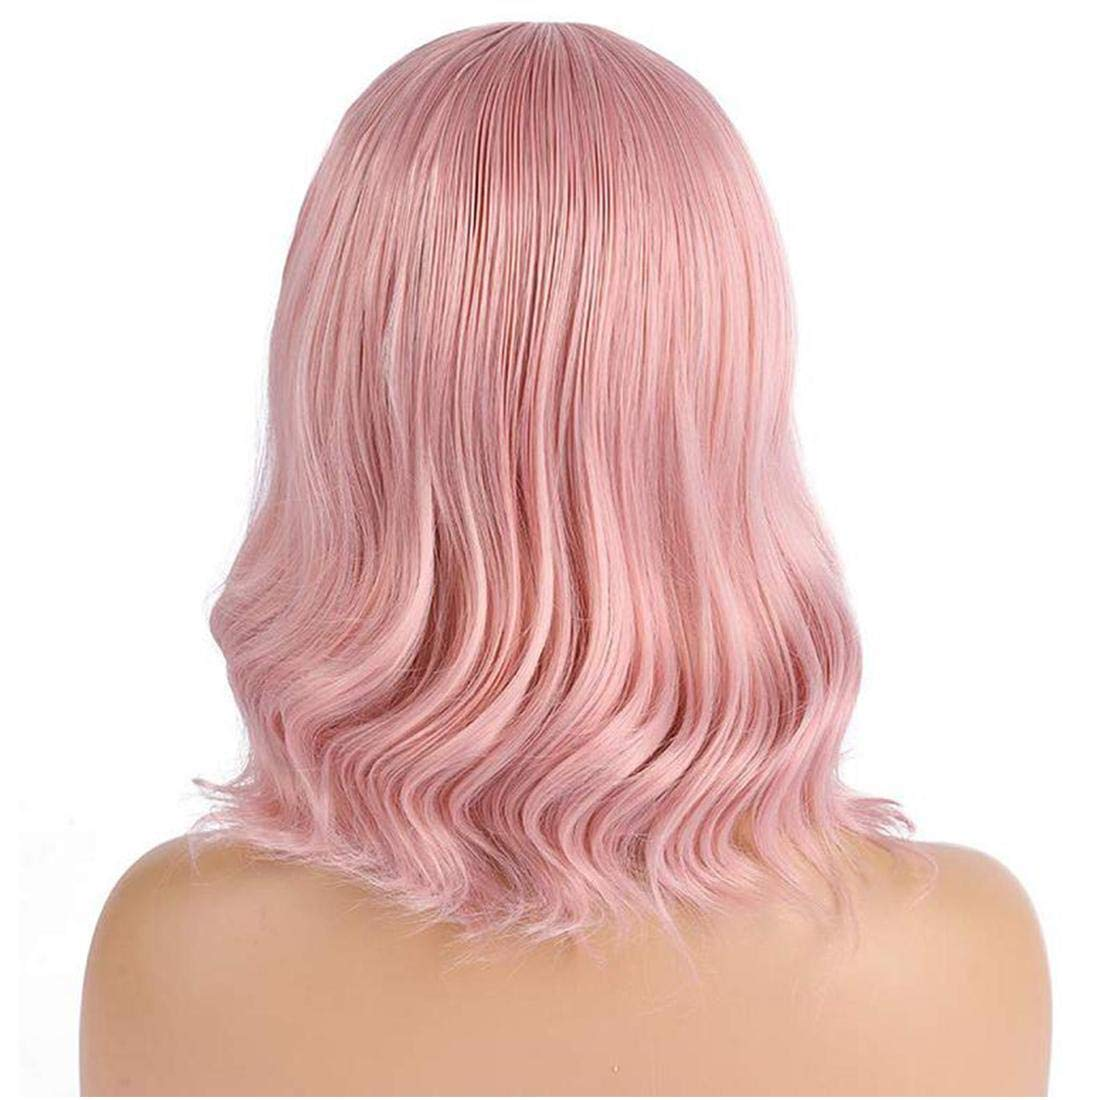 Wavy Wig With Bangs Short Bob Purple Wig for Women Shoulder Length Curly Wavy Synthetic Cosplay Wig for Girl Pastel Colorful Costume Wigs Adjustable Strap Not Slip Off Realistic Nice Looking-1